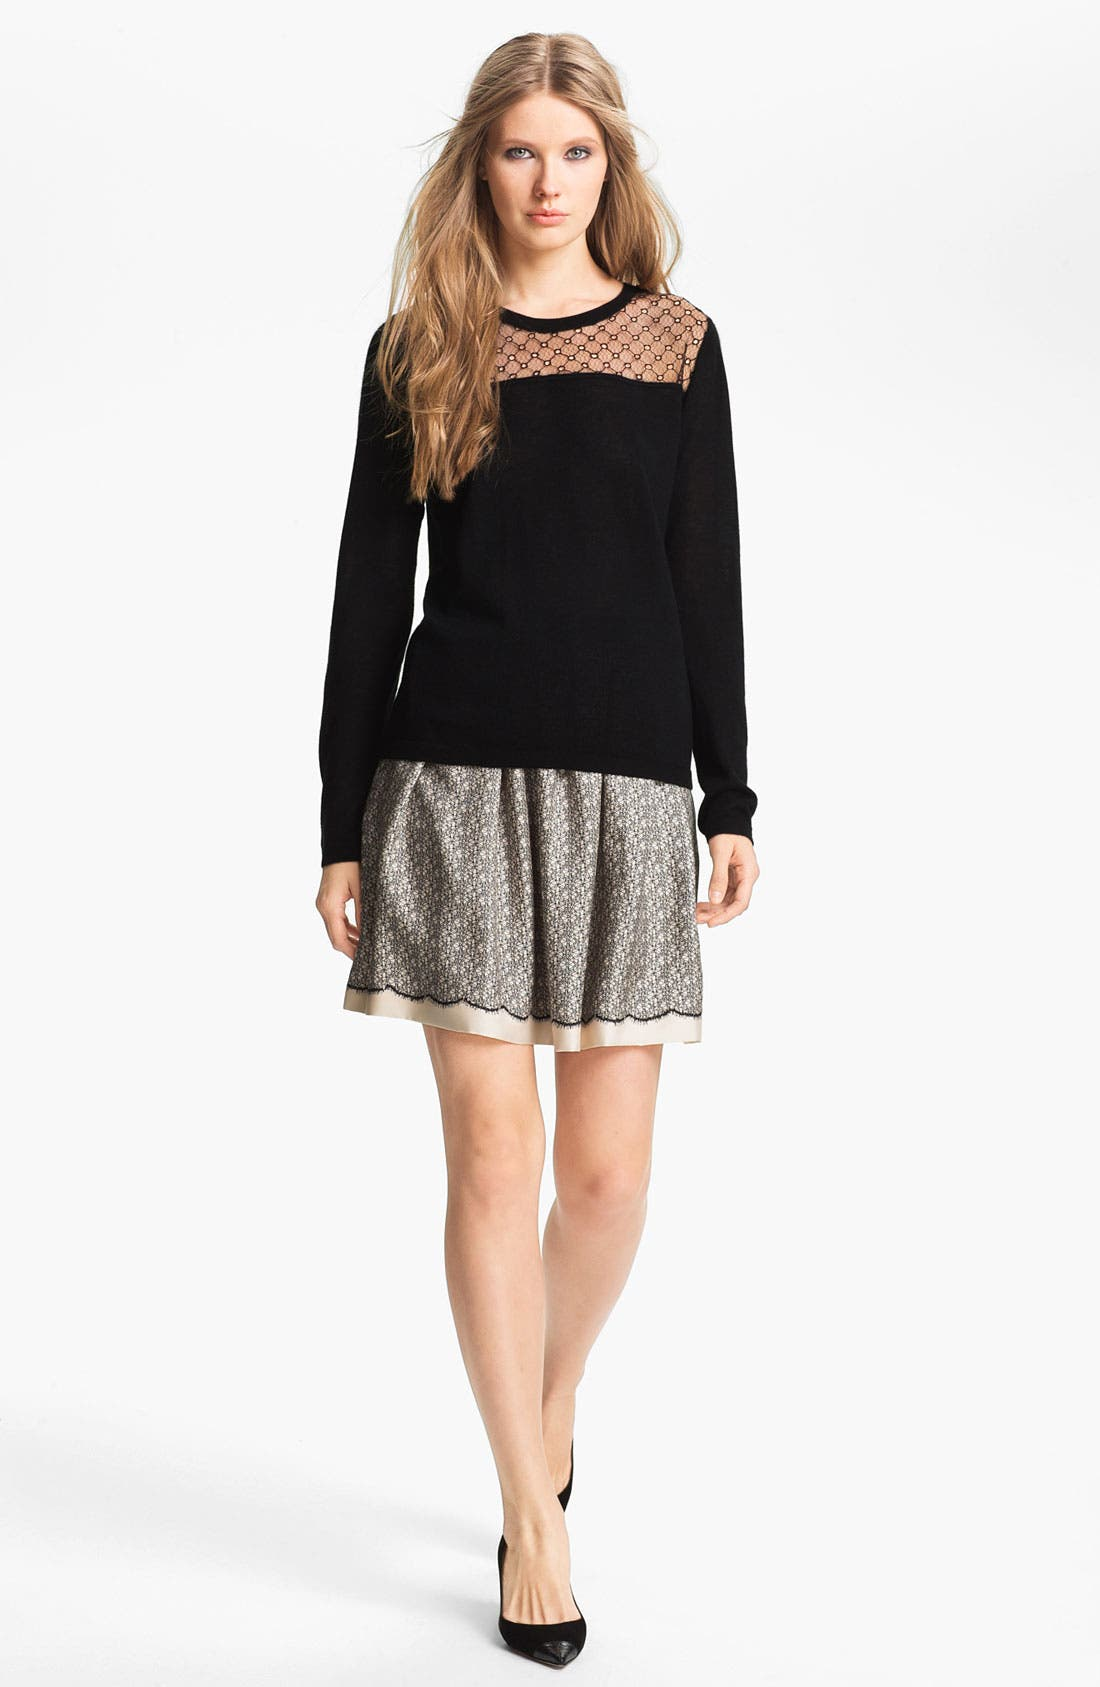 Alternate Image 1 Selected - Miss Wu 'Sofie' Lace Yoke Cashmere Sweater (Nordstrom Exclusive)